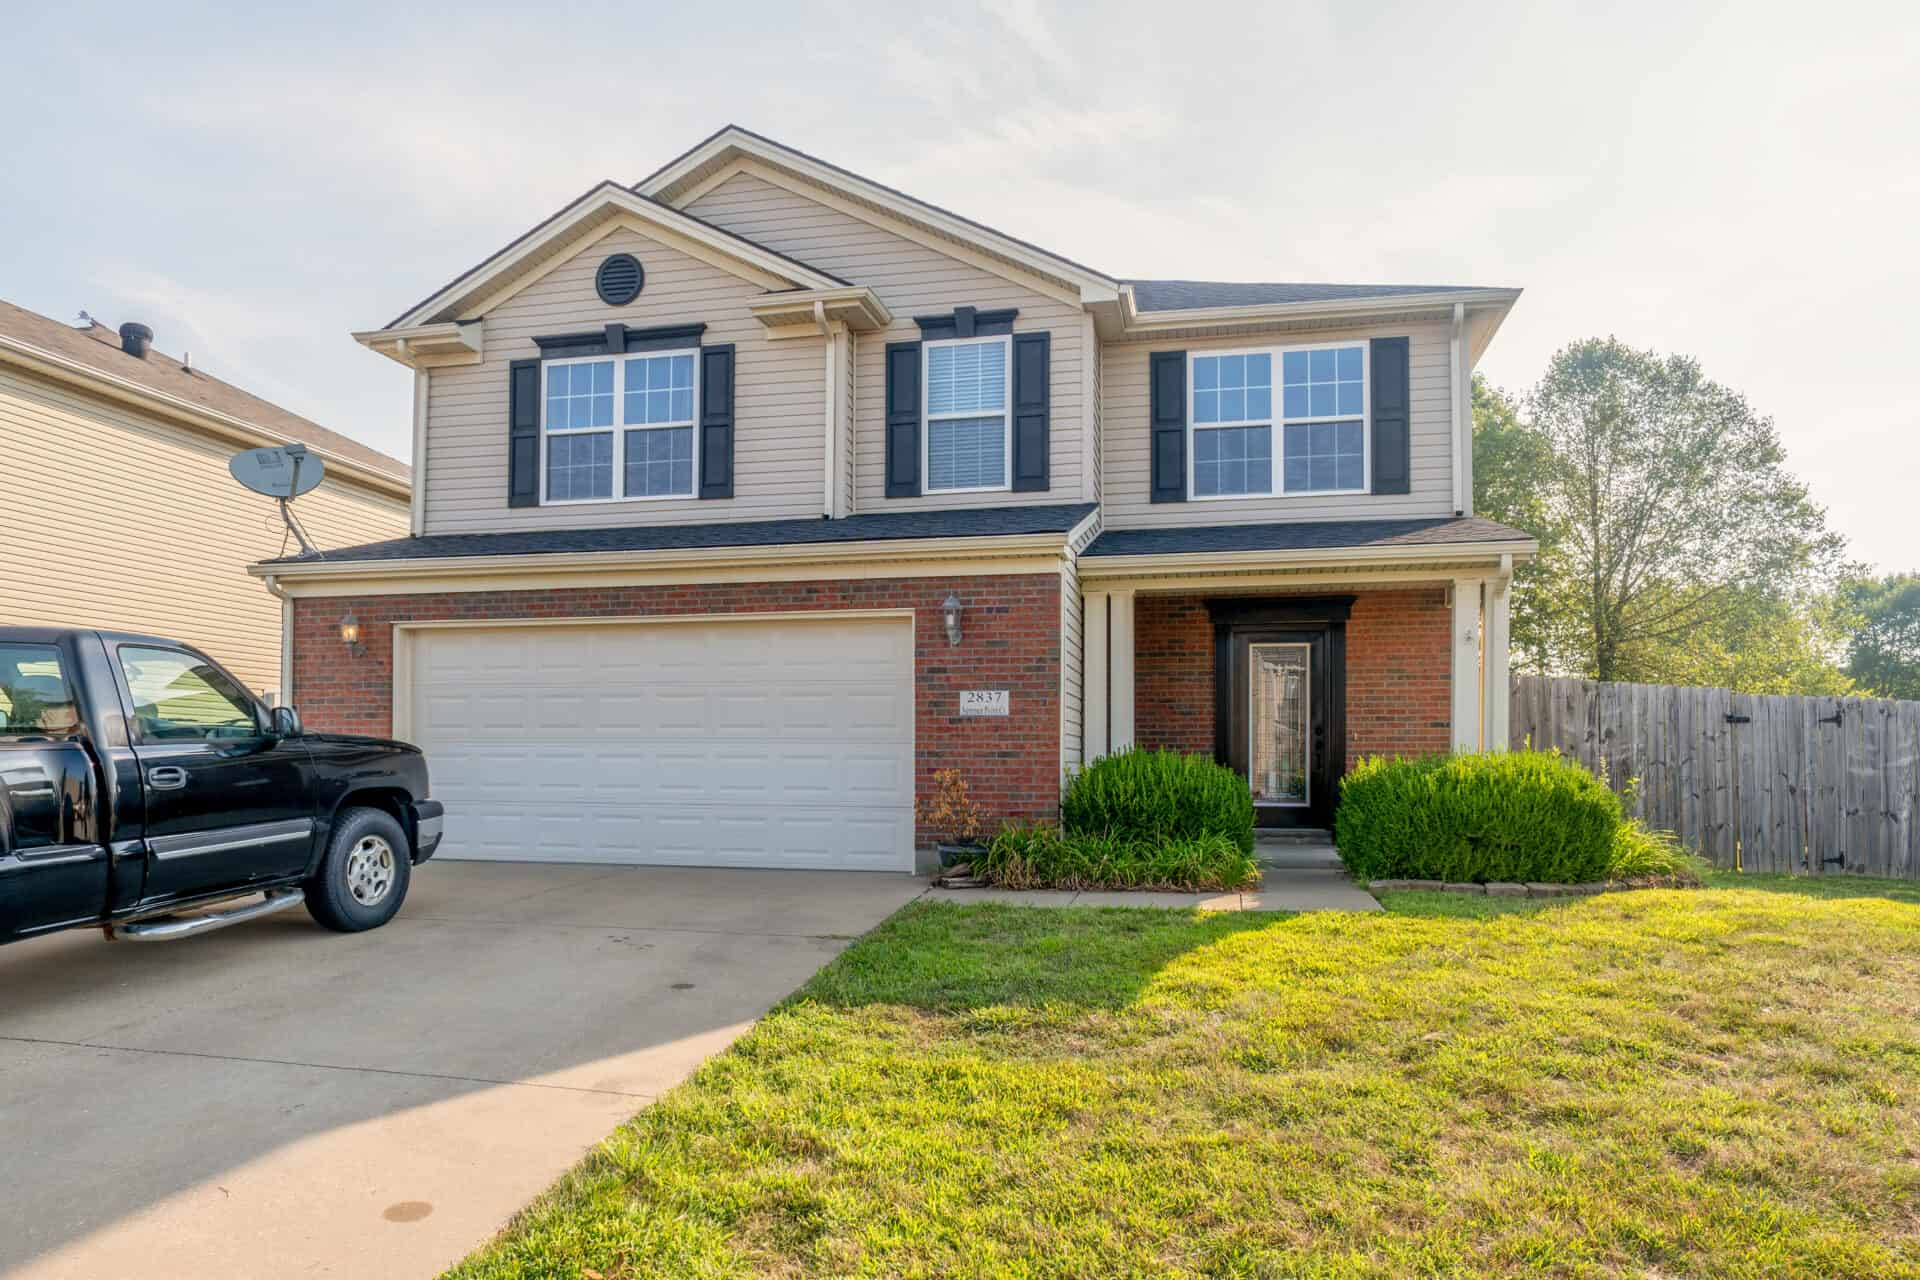 2837 Summer Point Ct., Owensboro, KY 42303